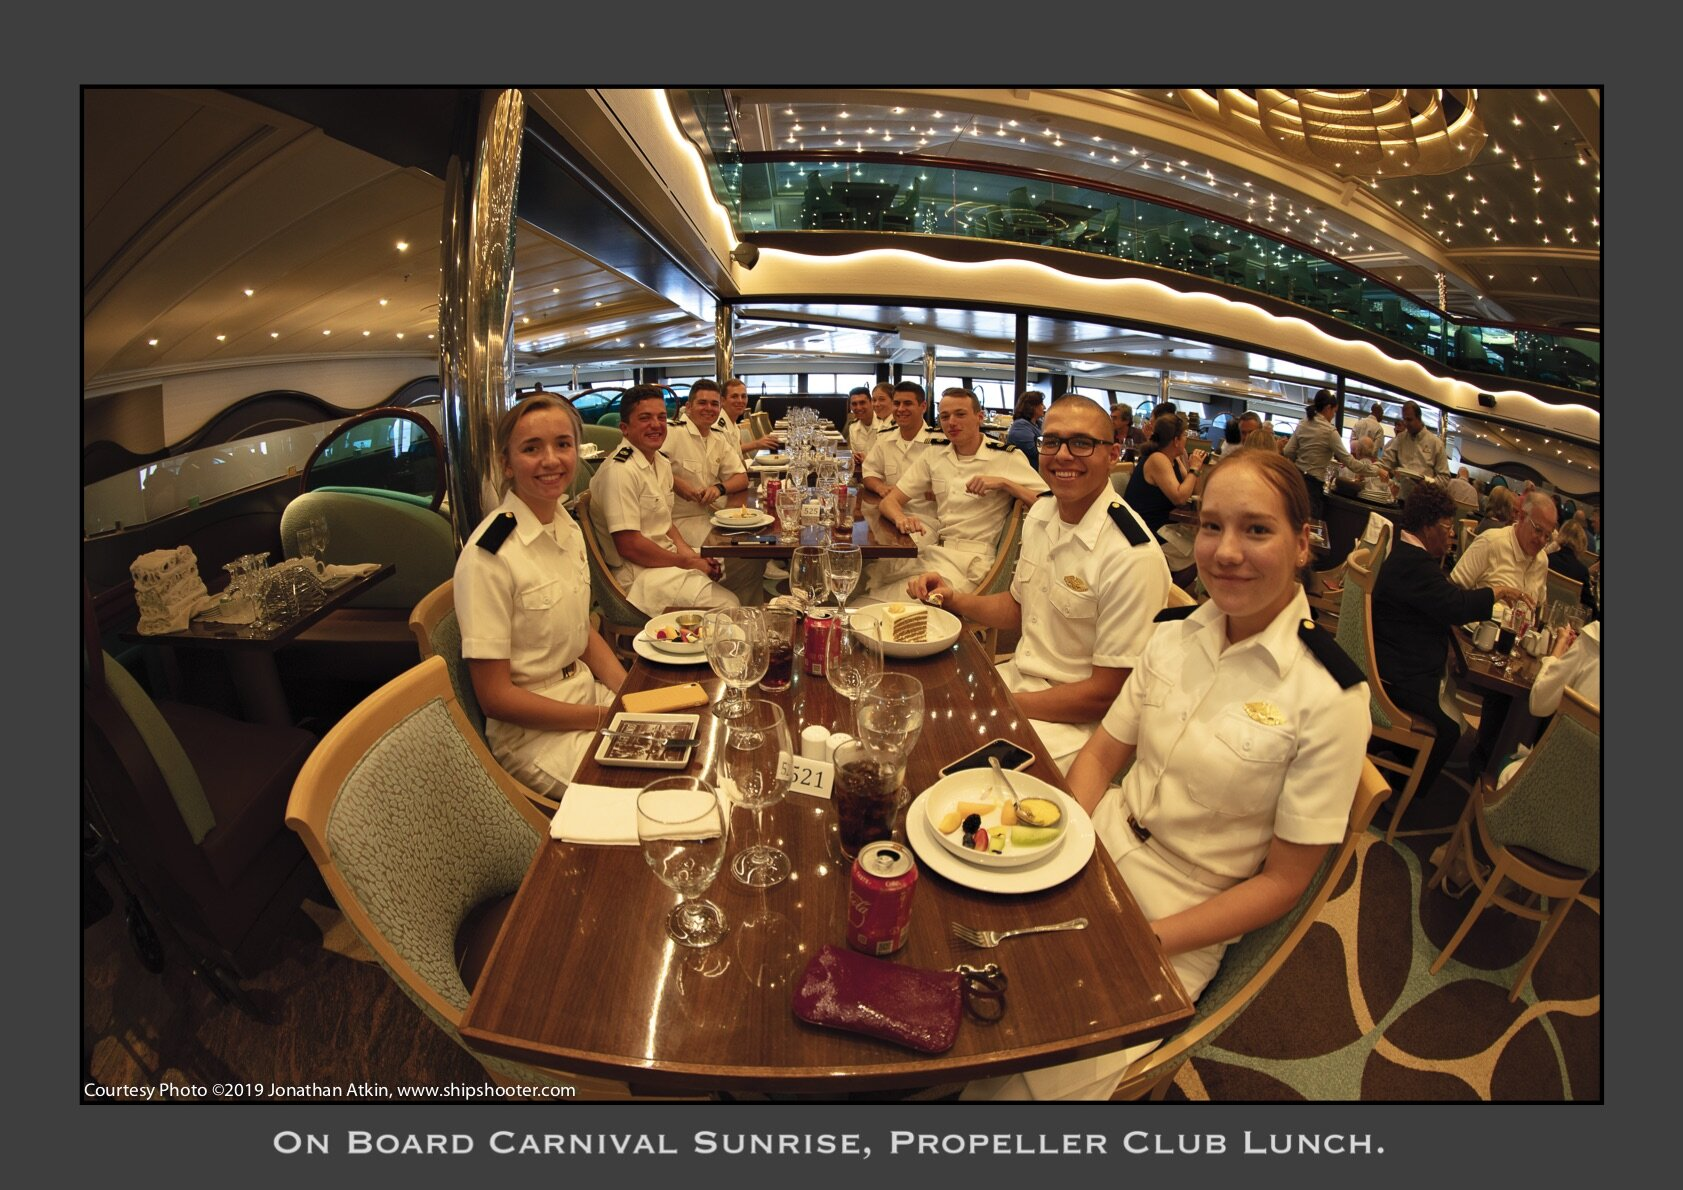 Midshipmen from U.S. Merchant Marine Academy and Cadets from SUNY - Maritime on board Carnival Sunrise for a luncheon on Sept. 22, 2019